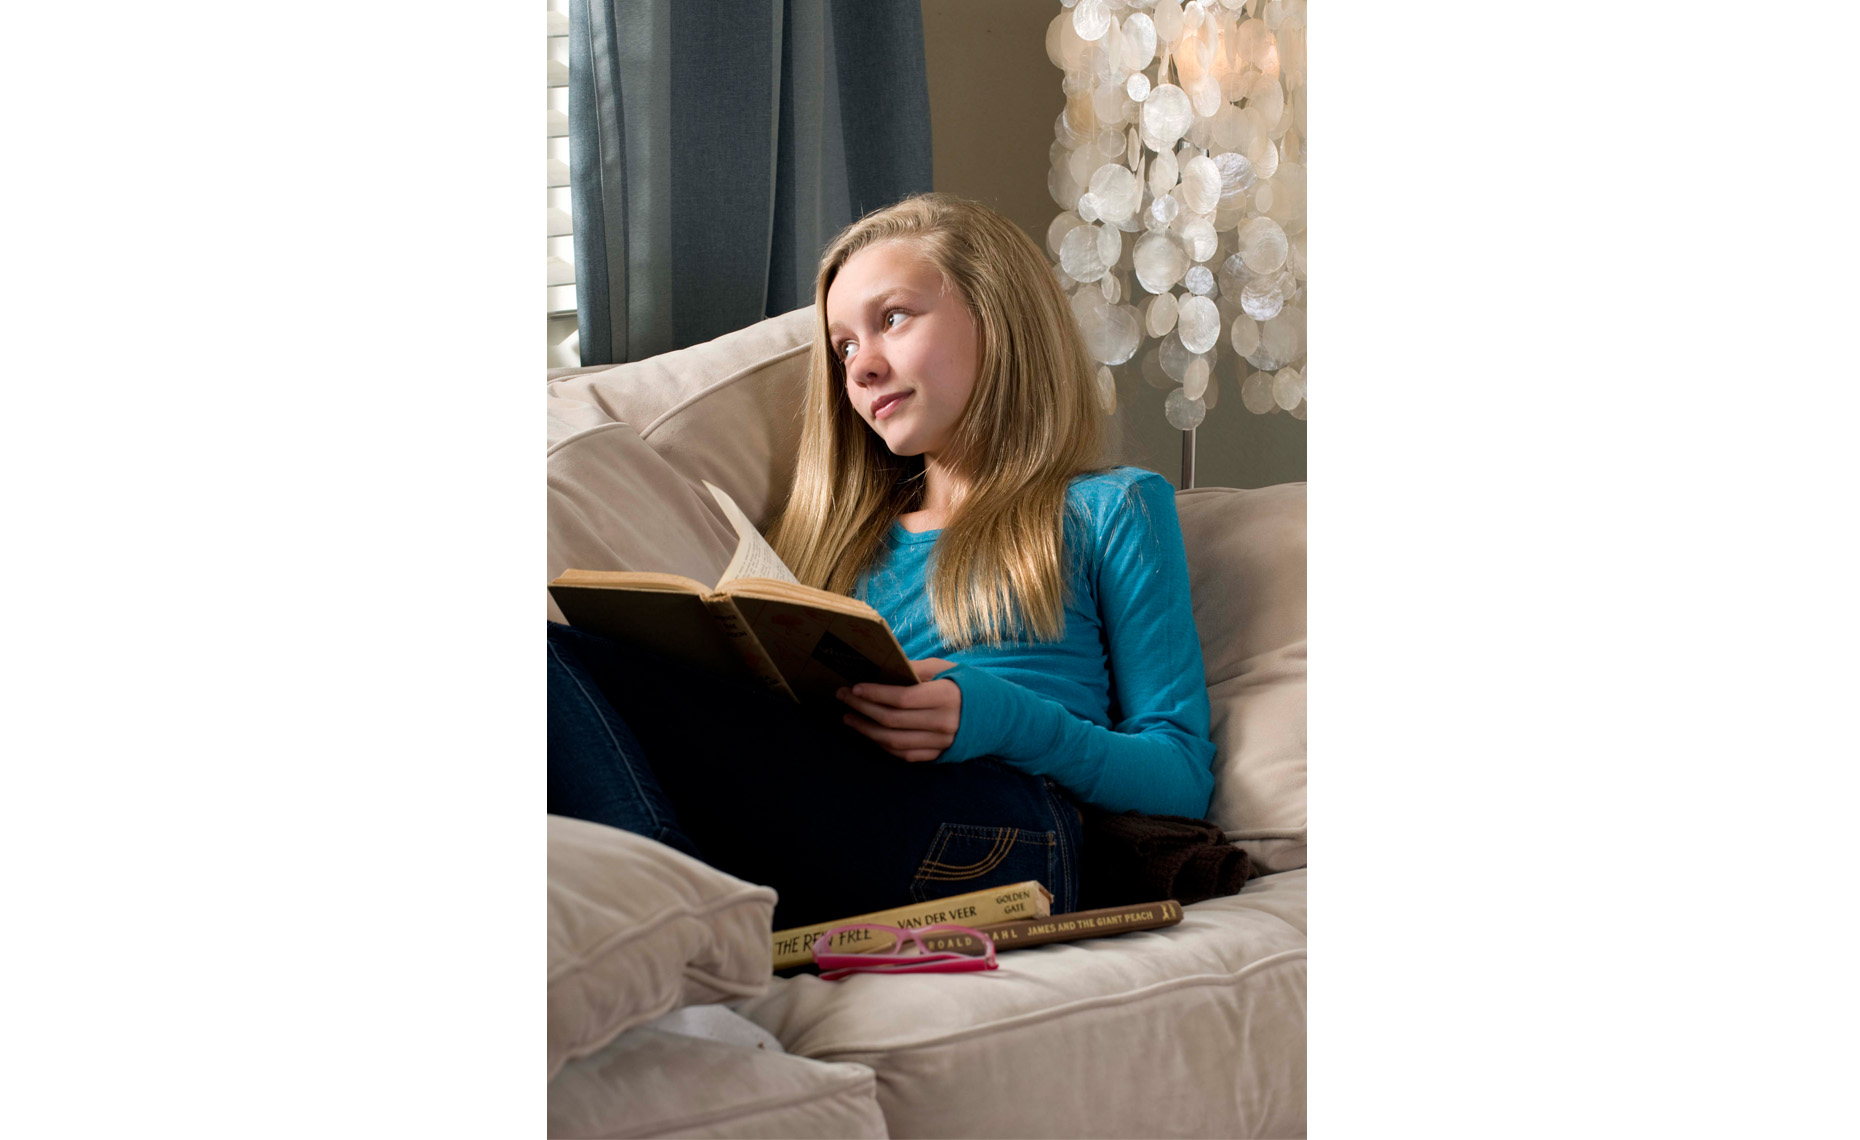 girl tween reading and daydreaming at window